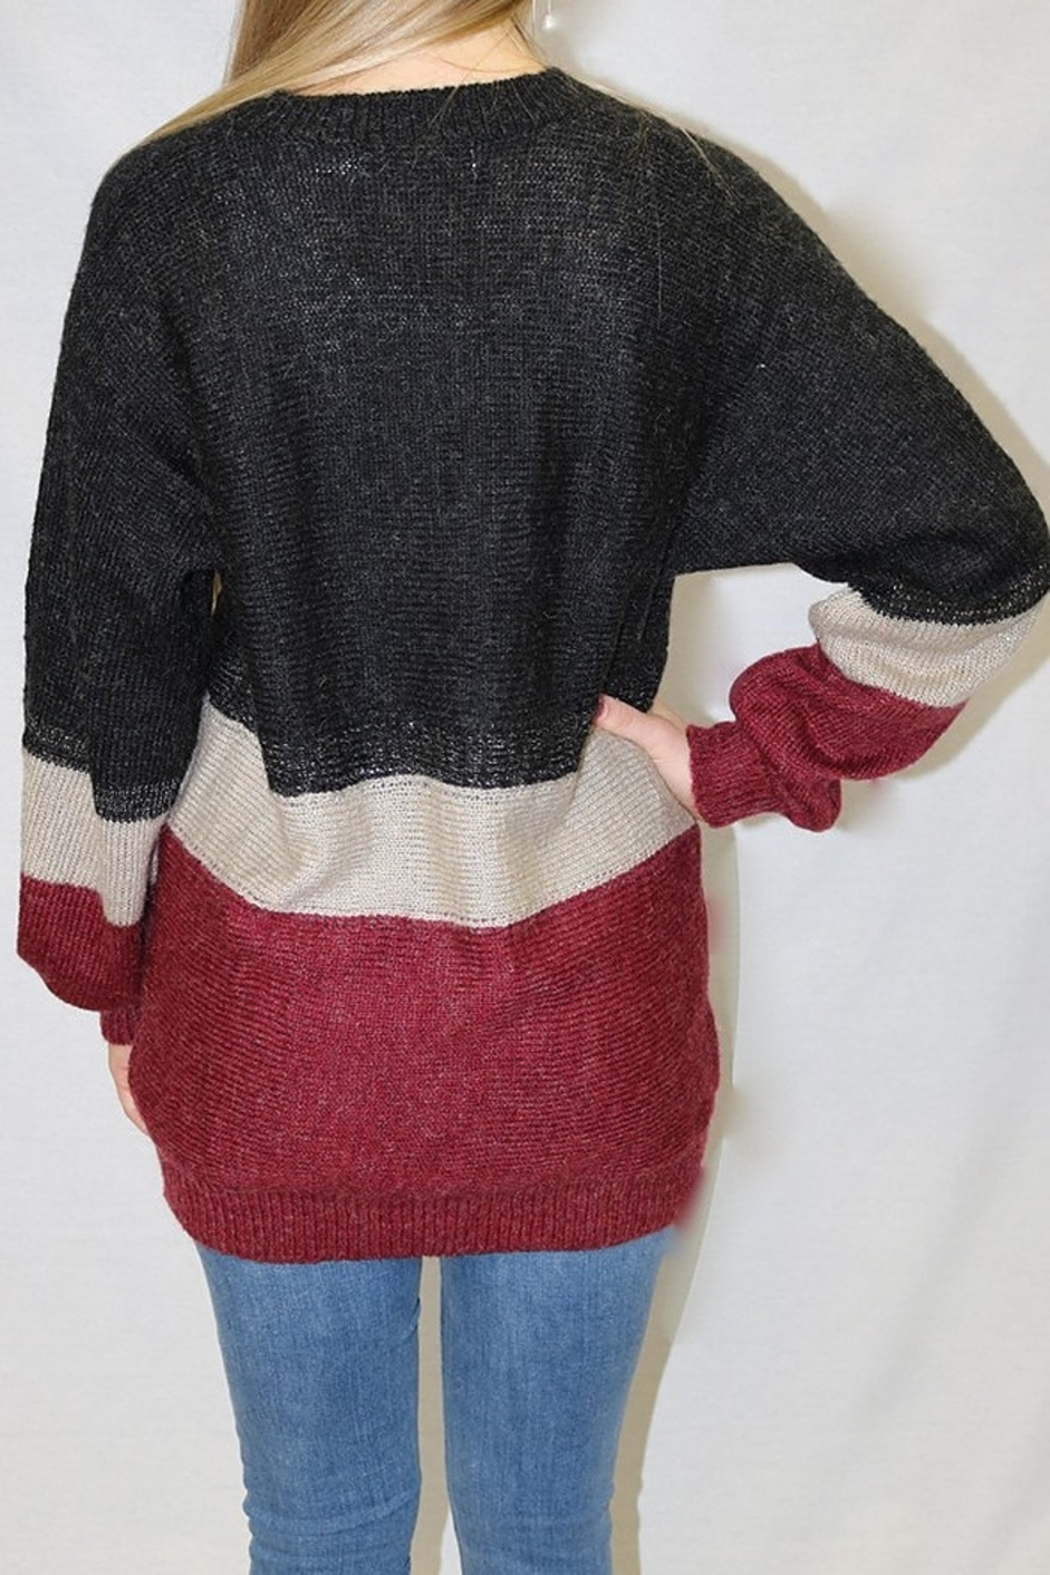 Bishop + Young Jules Tunic Colorblock Sweater - Front Full Image